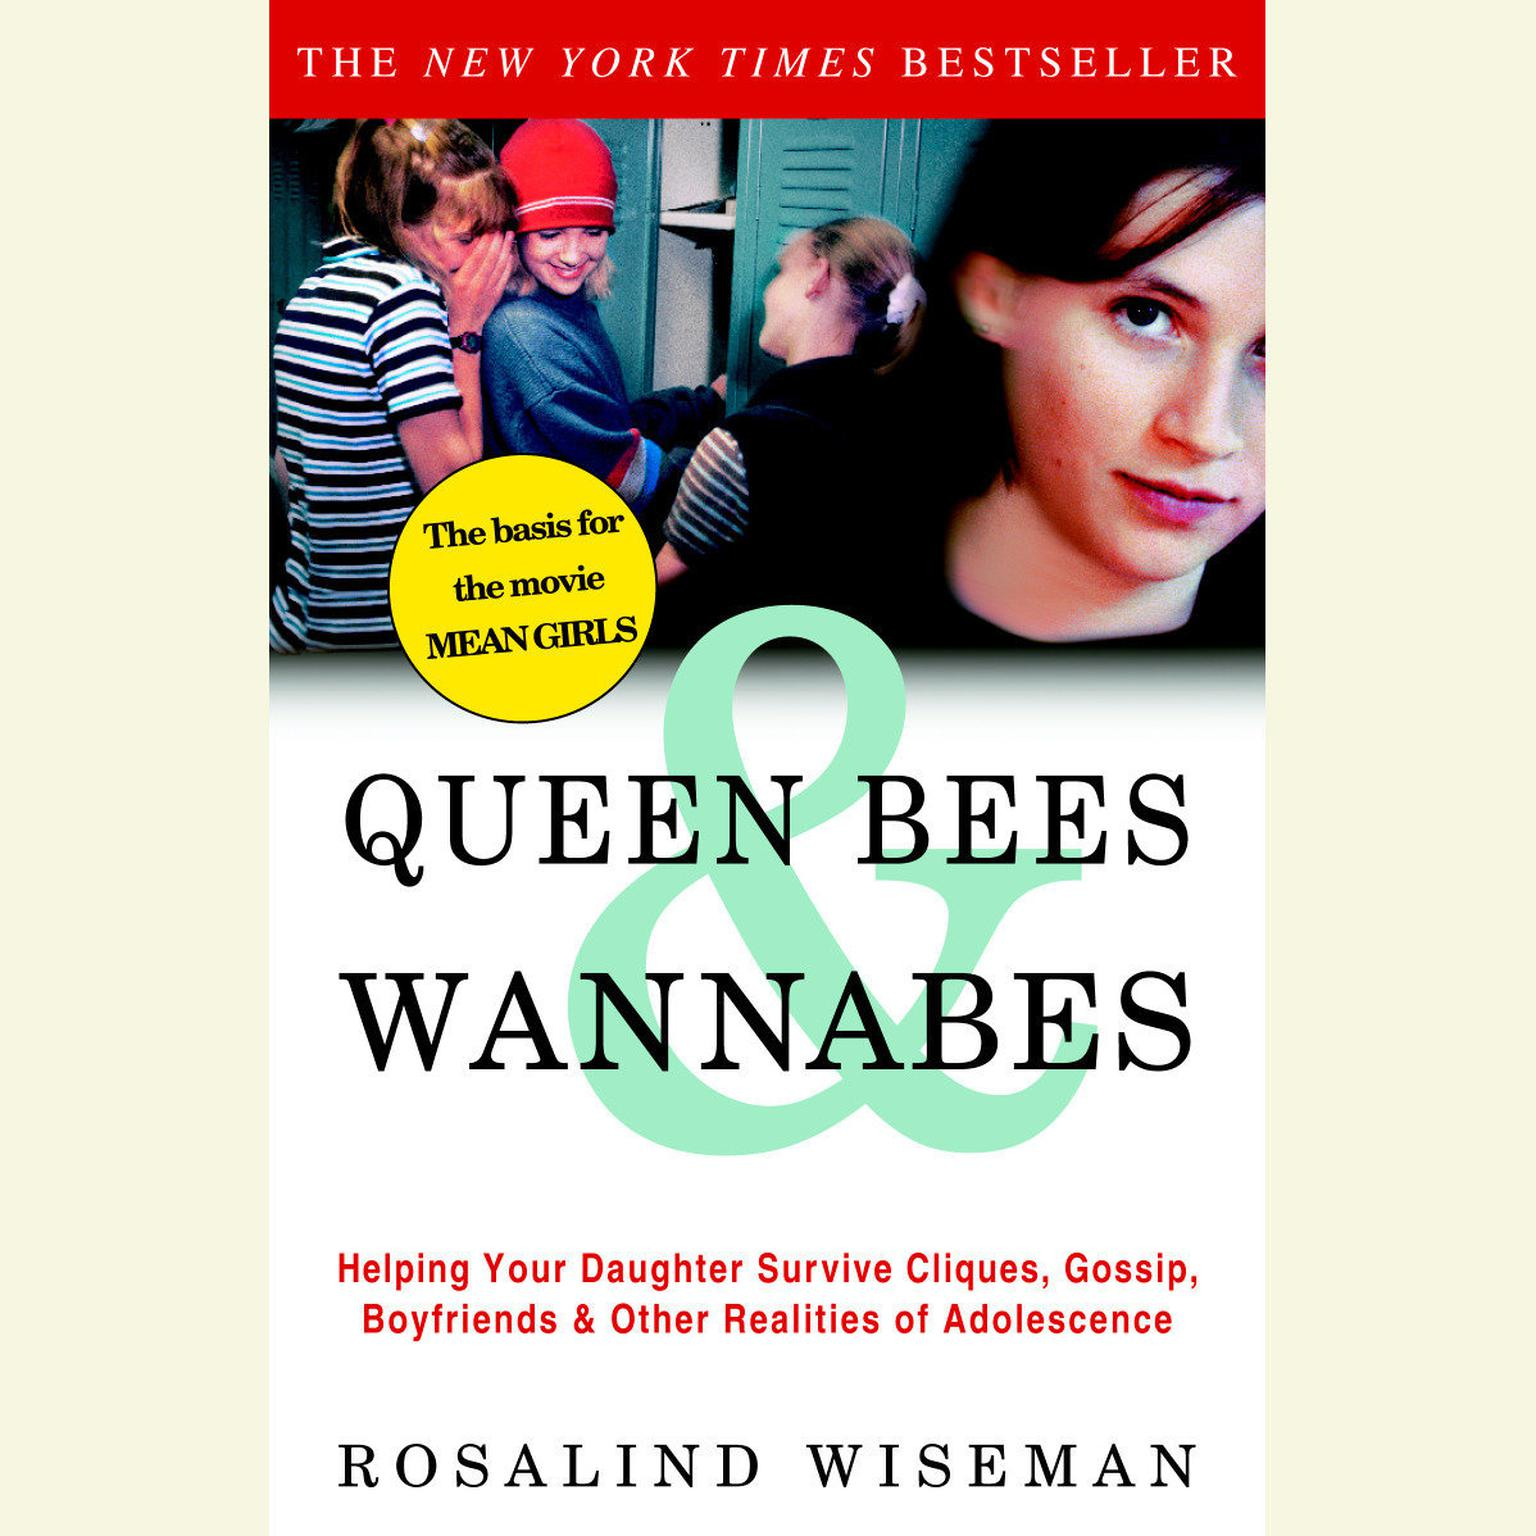 Printable Queen Bees and Wannabes: Helping Your Daughter Survive Cliques, Gossip, Boyfriends, and the New Realities of Girl World Audiobook Cover Art